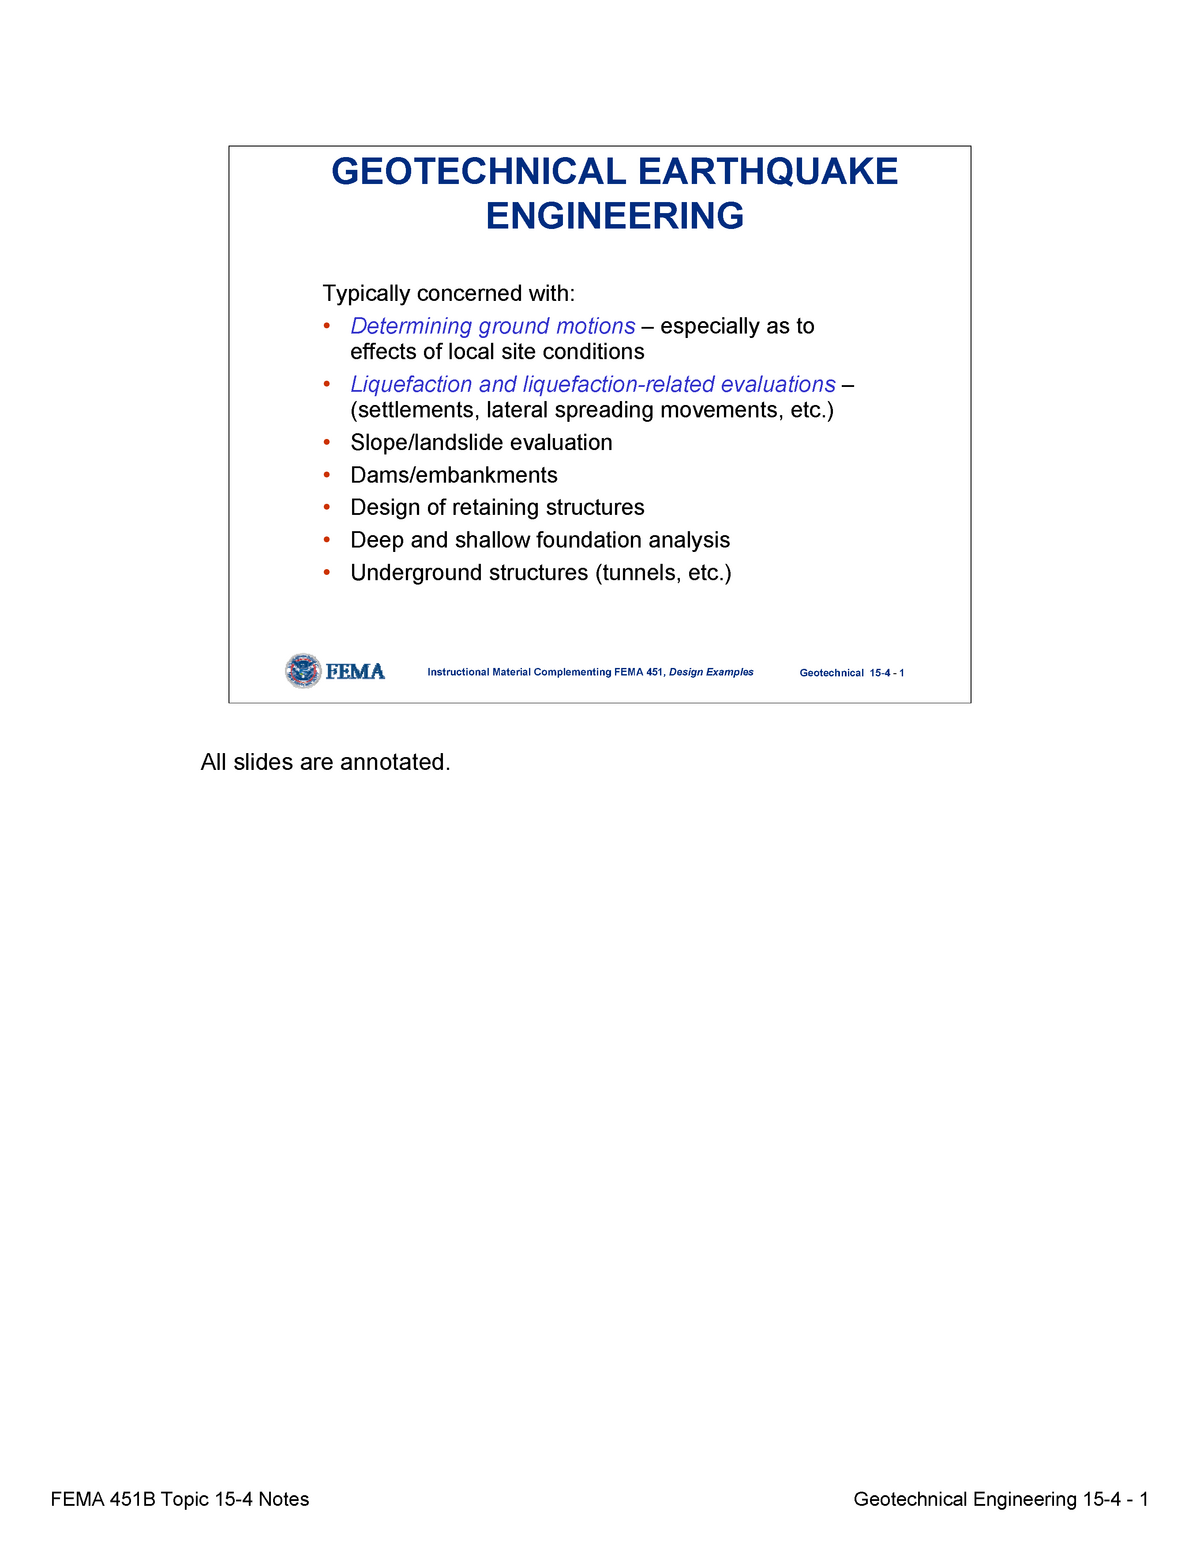 Topic 15 4 Geotechnical Earthquake Engineering Notes Uofm Studocu